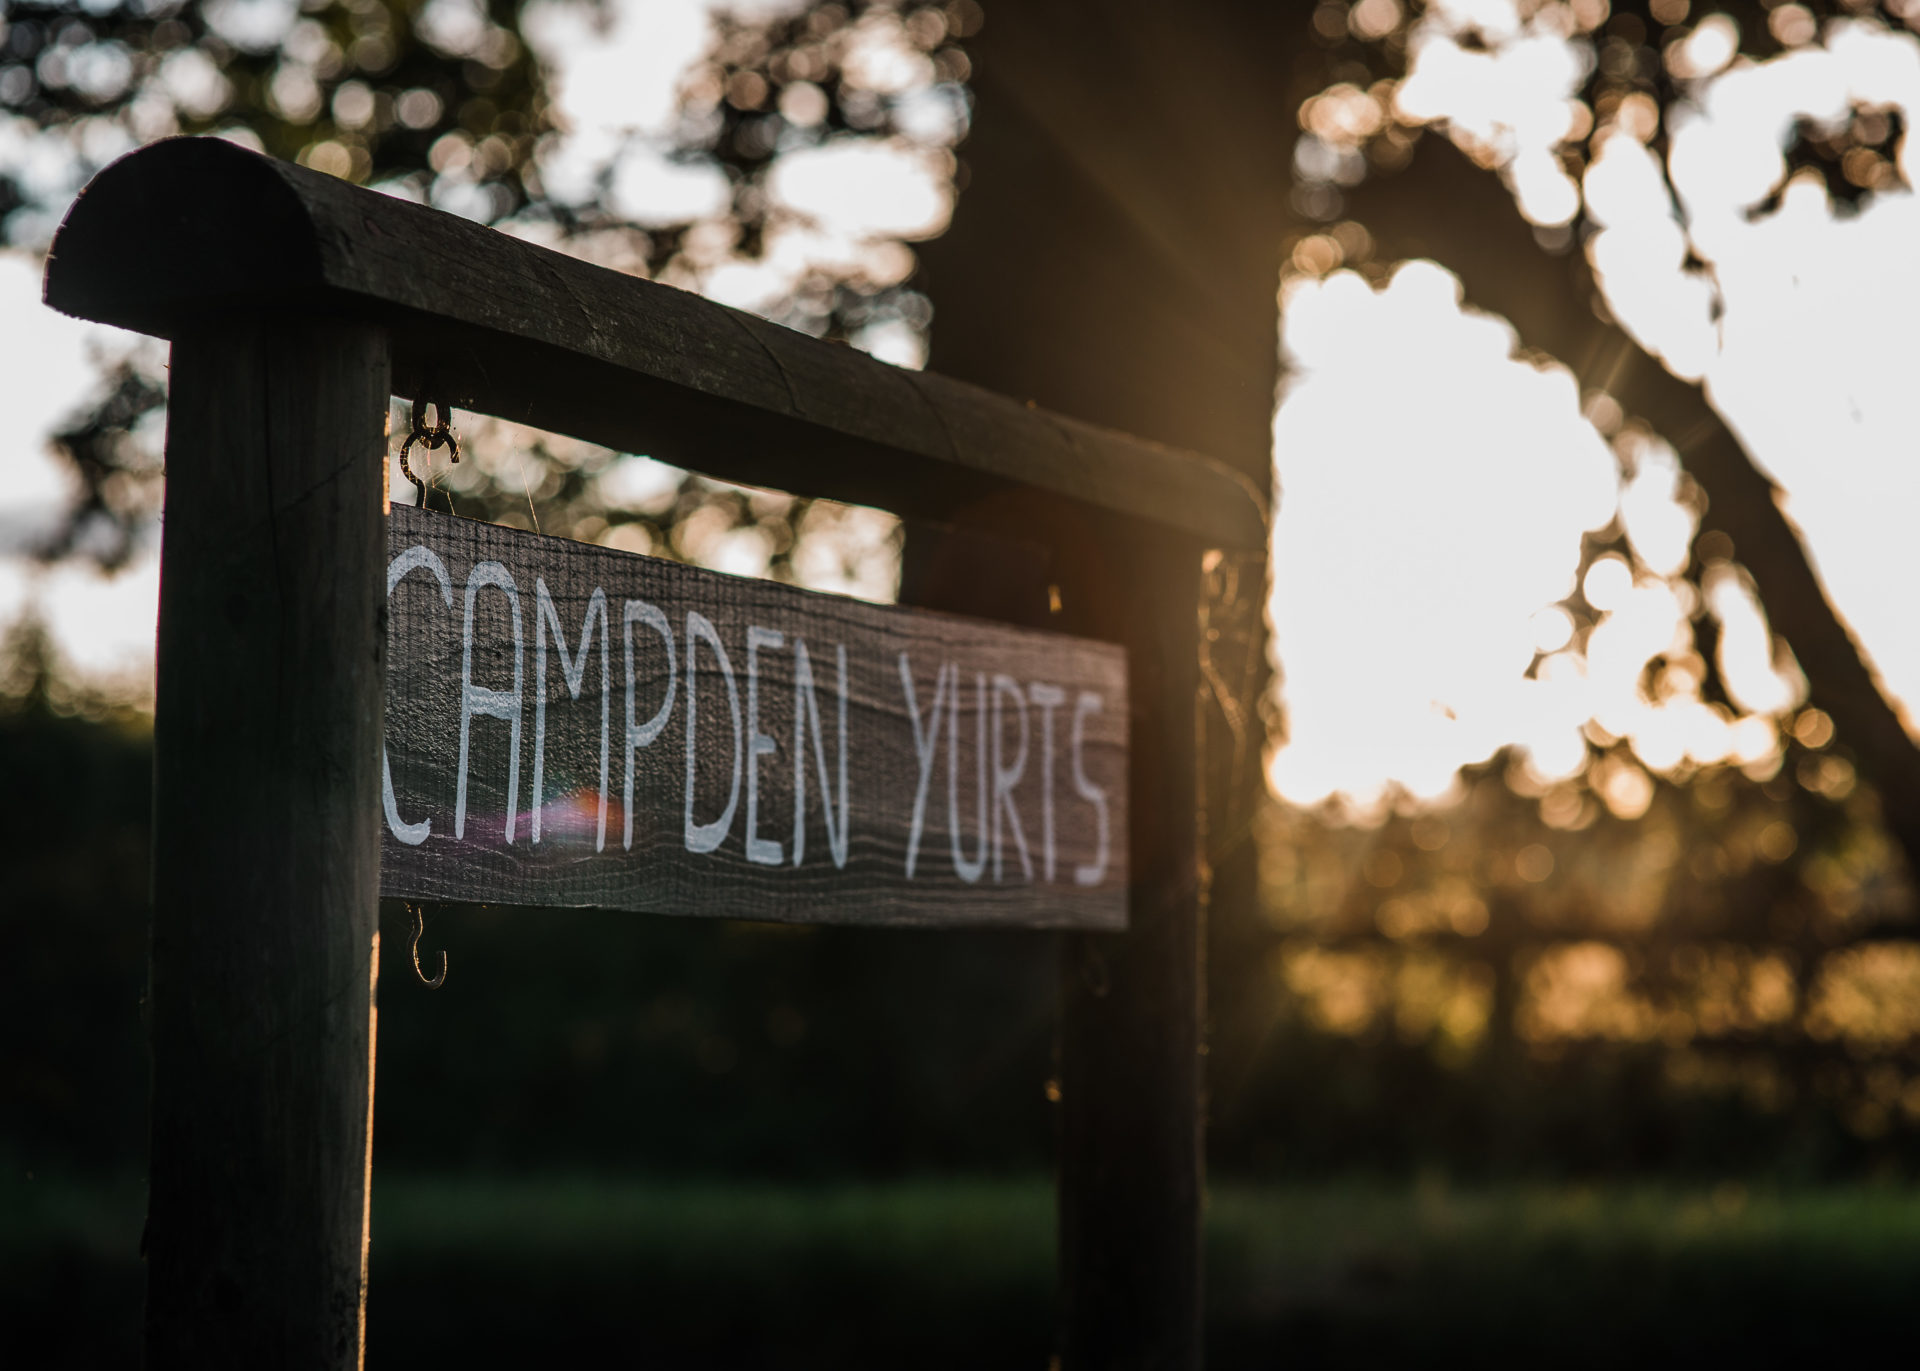 Wooden sign of Campden Yurts